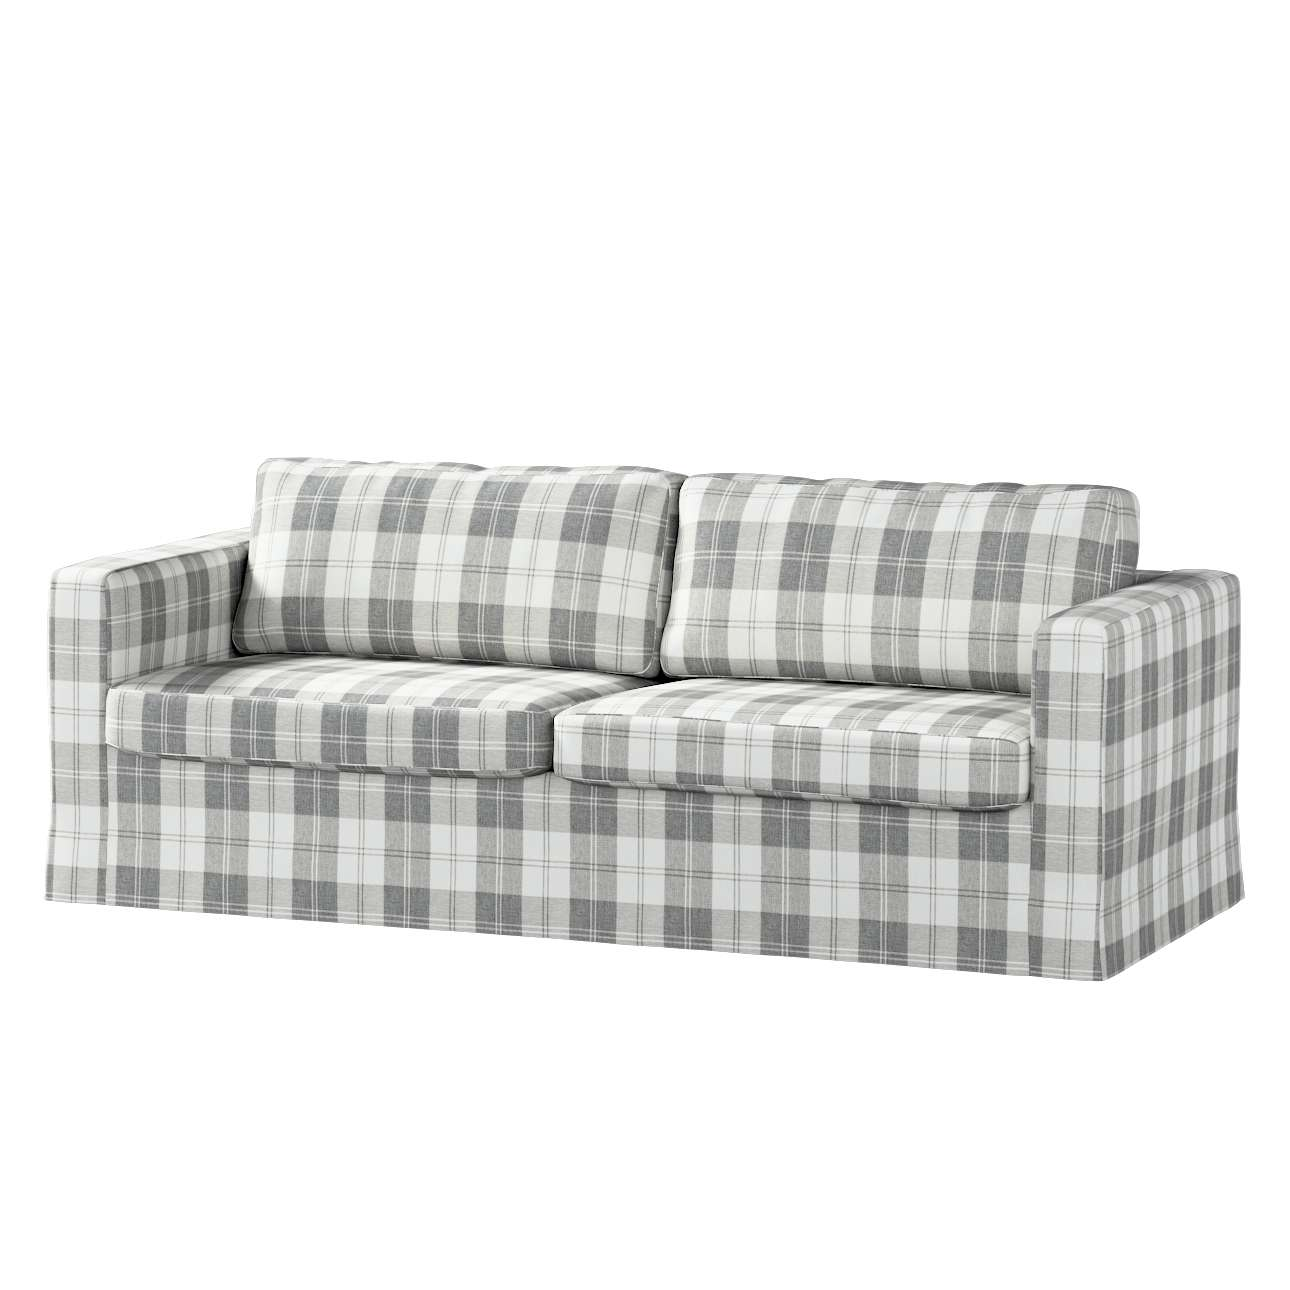 Floor length Karlstad 3-seater sofa cover in collection Edinburgh, fabric: 115-79